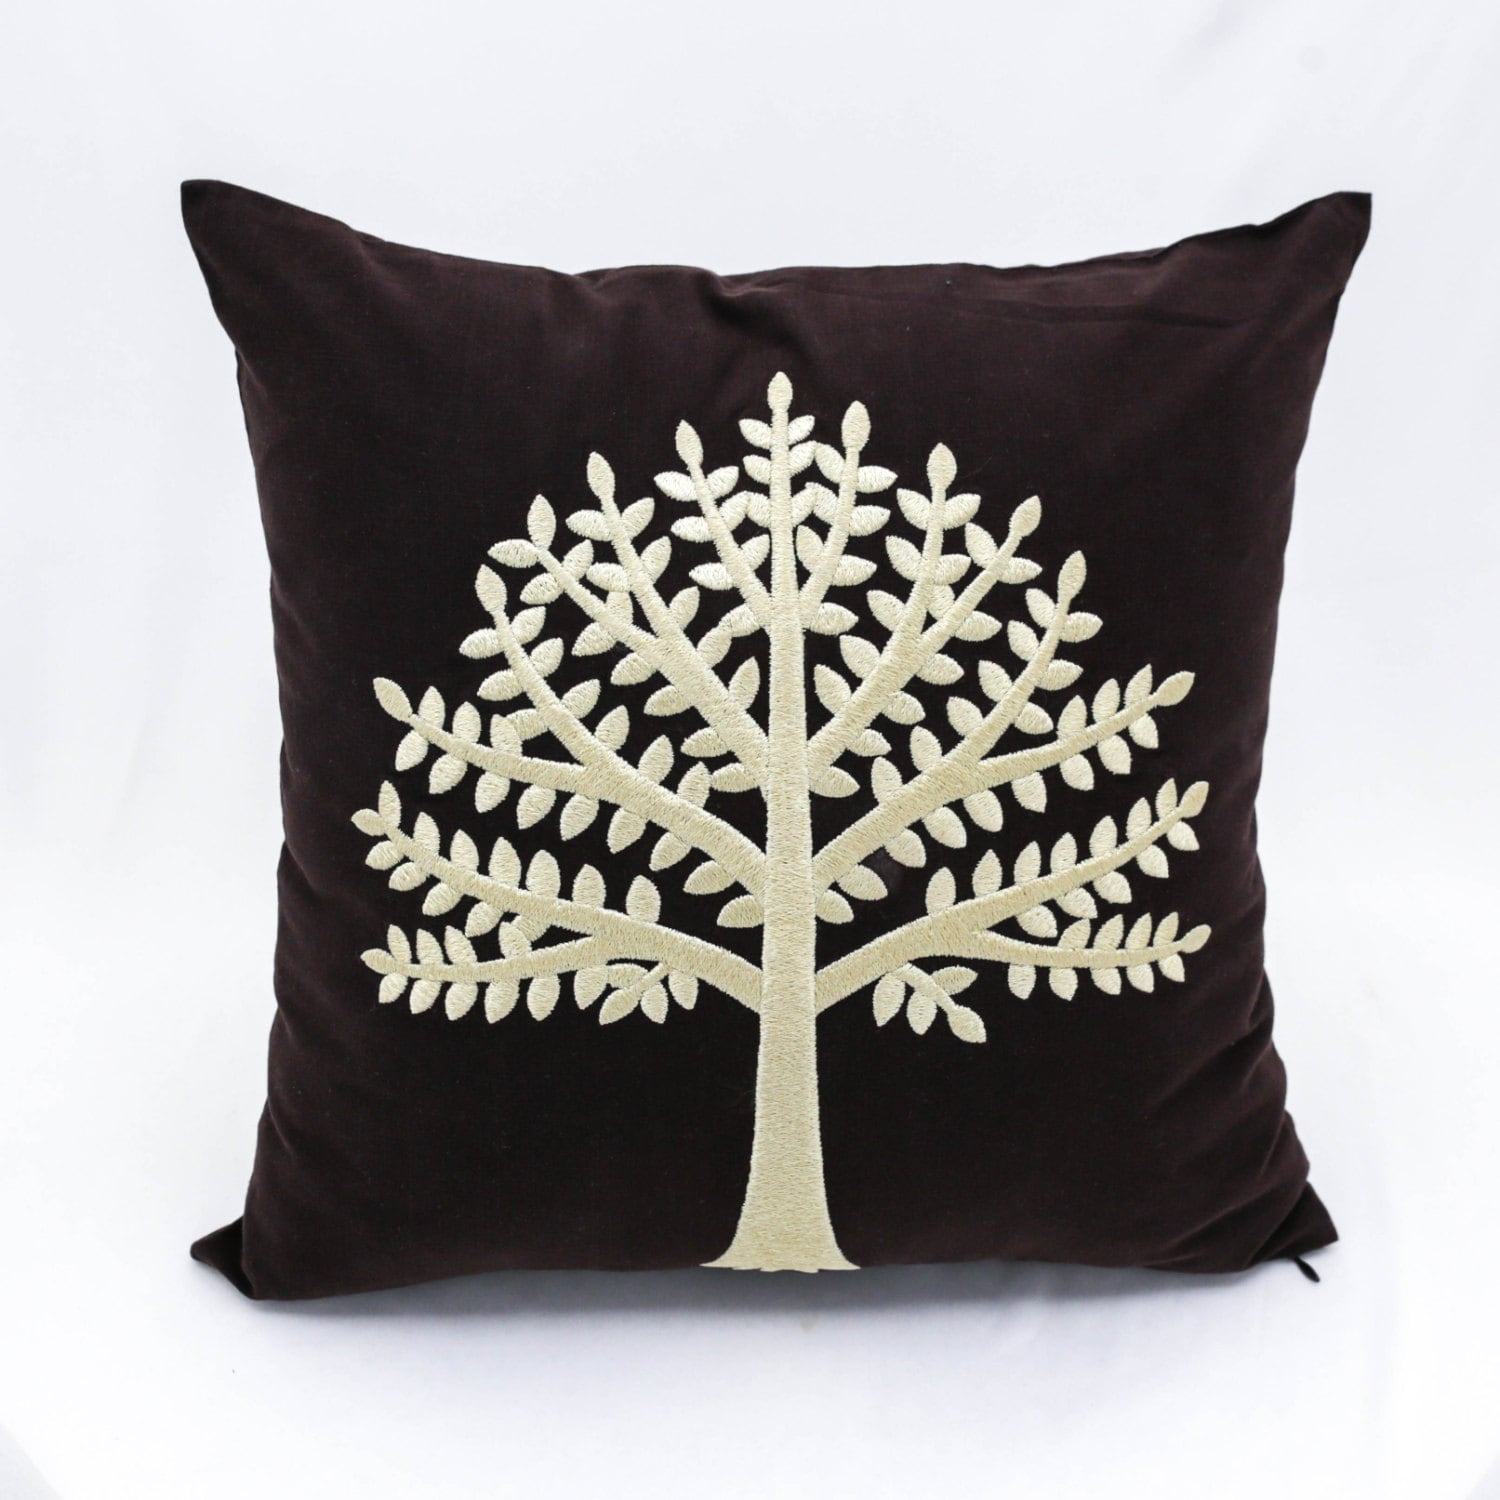 Tree Decorative Pillow Cover Dark Brown Linen Pillow Cream